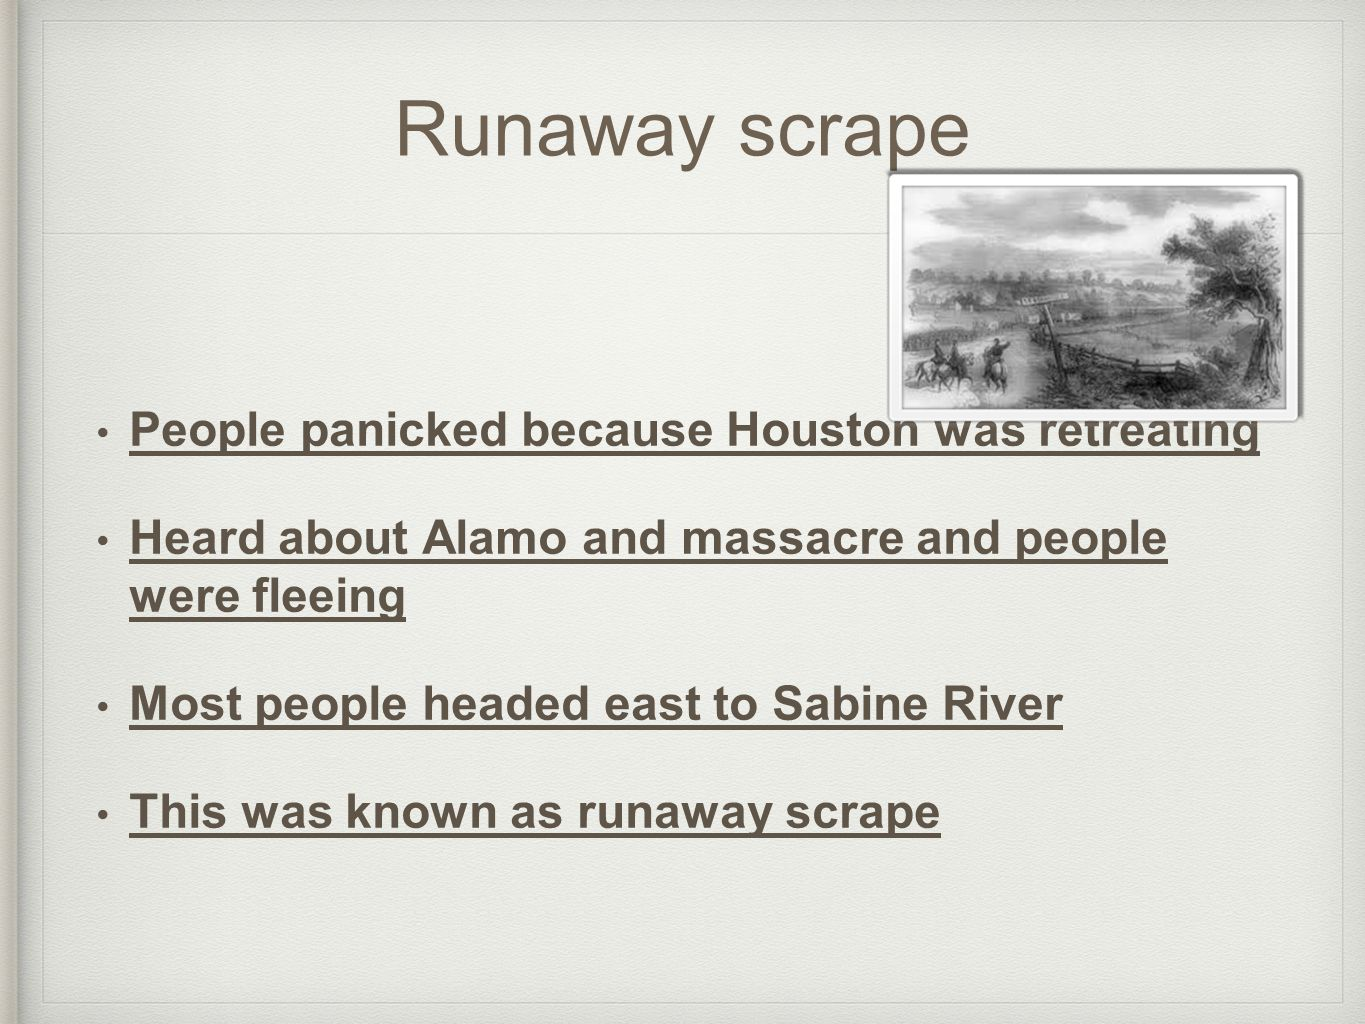 Runaway scrape People panicked because Houston was retreating Heard about Alamo and massacre and people were fleeing Most people headed east to Sabine River This was known as runaway scrape